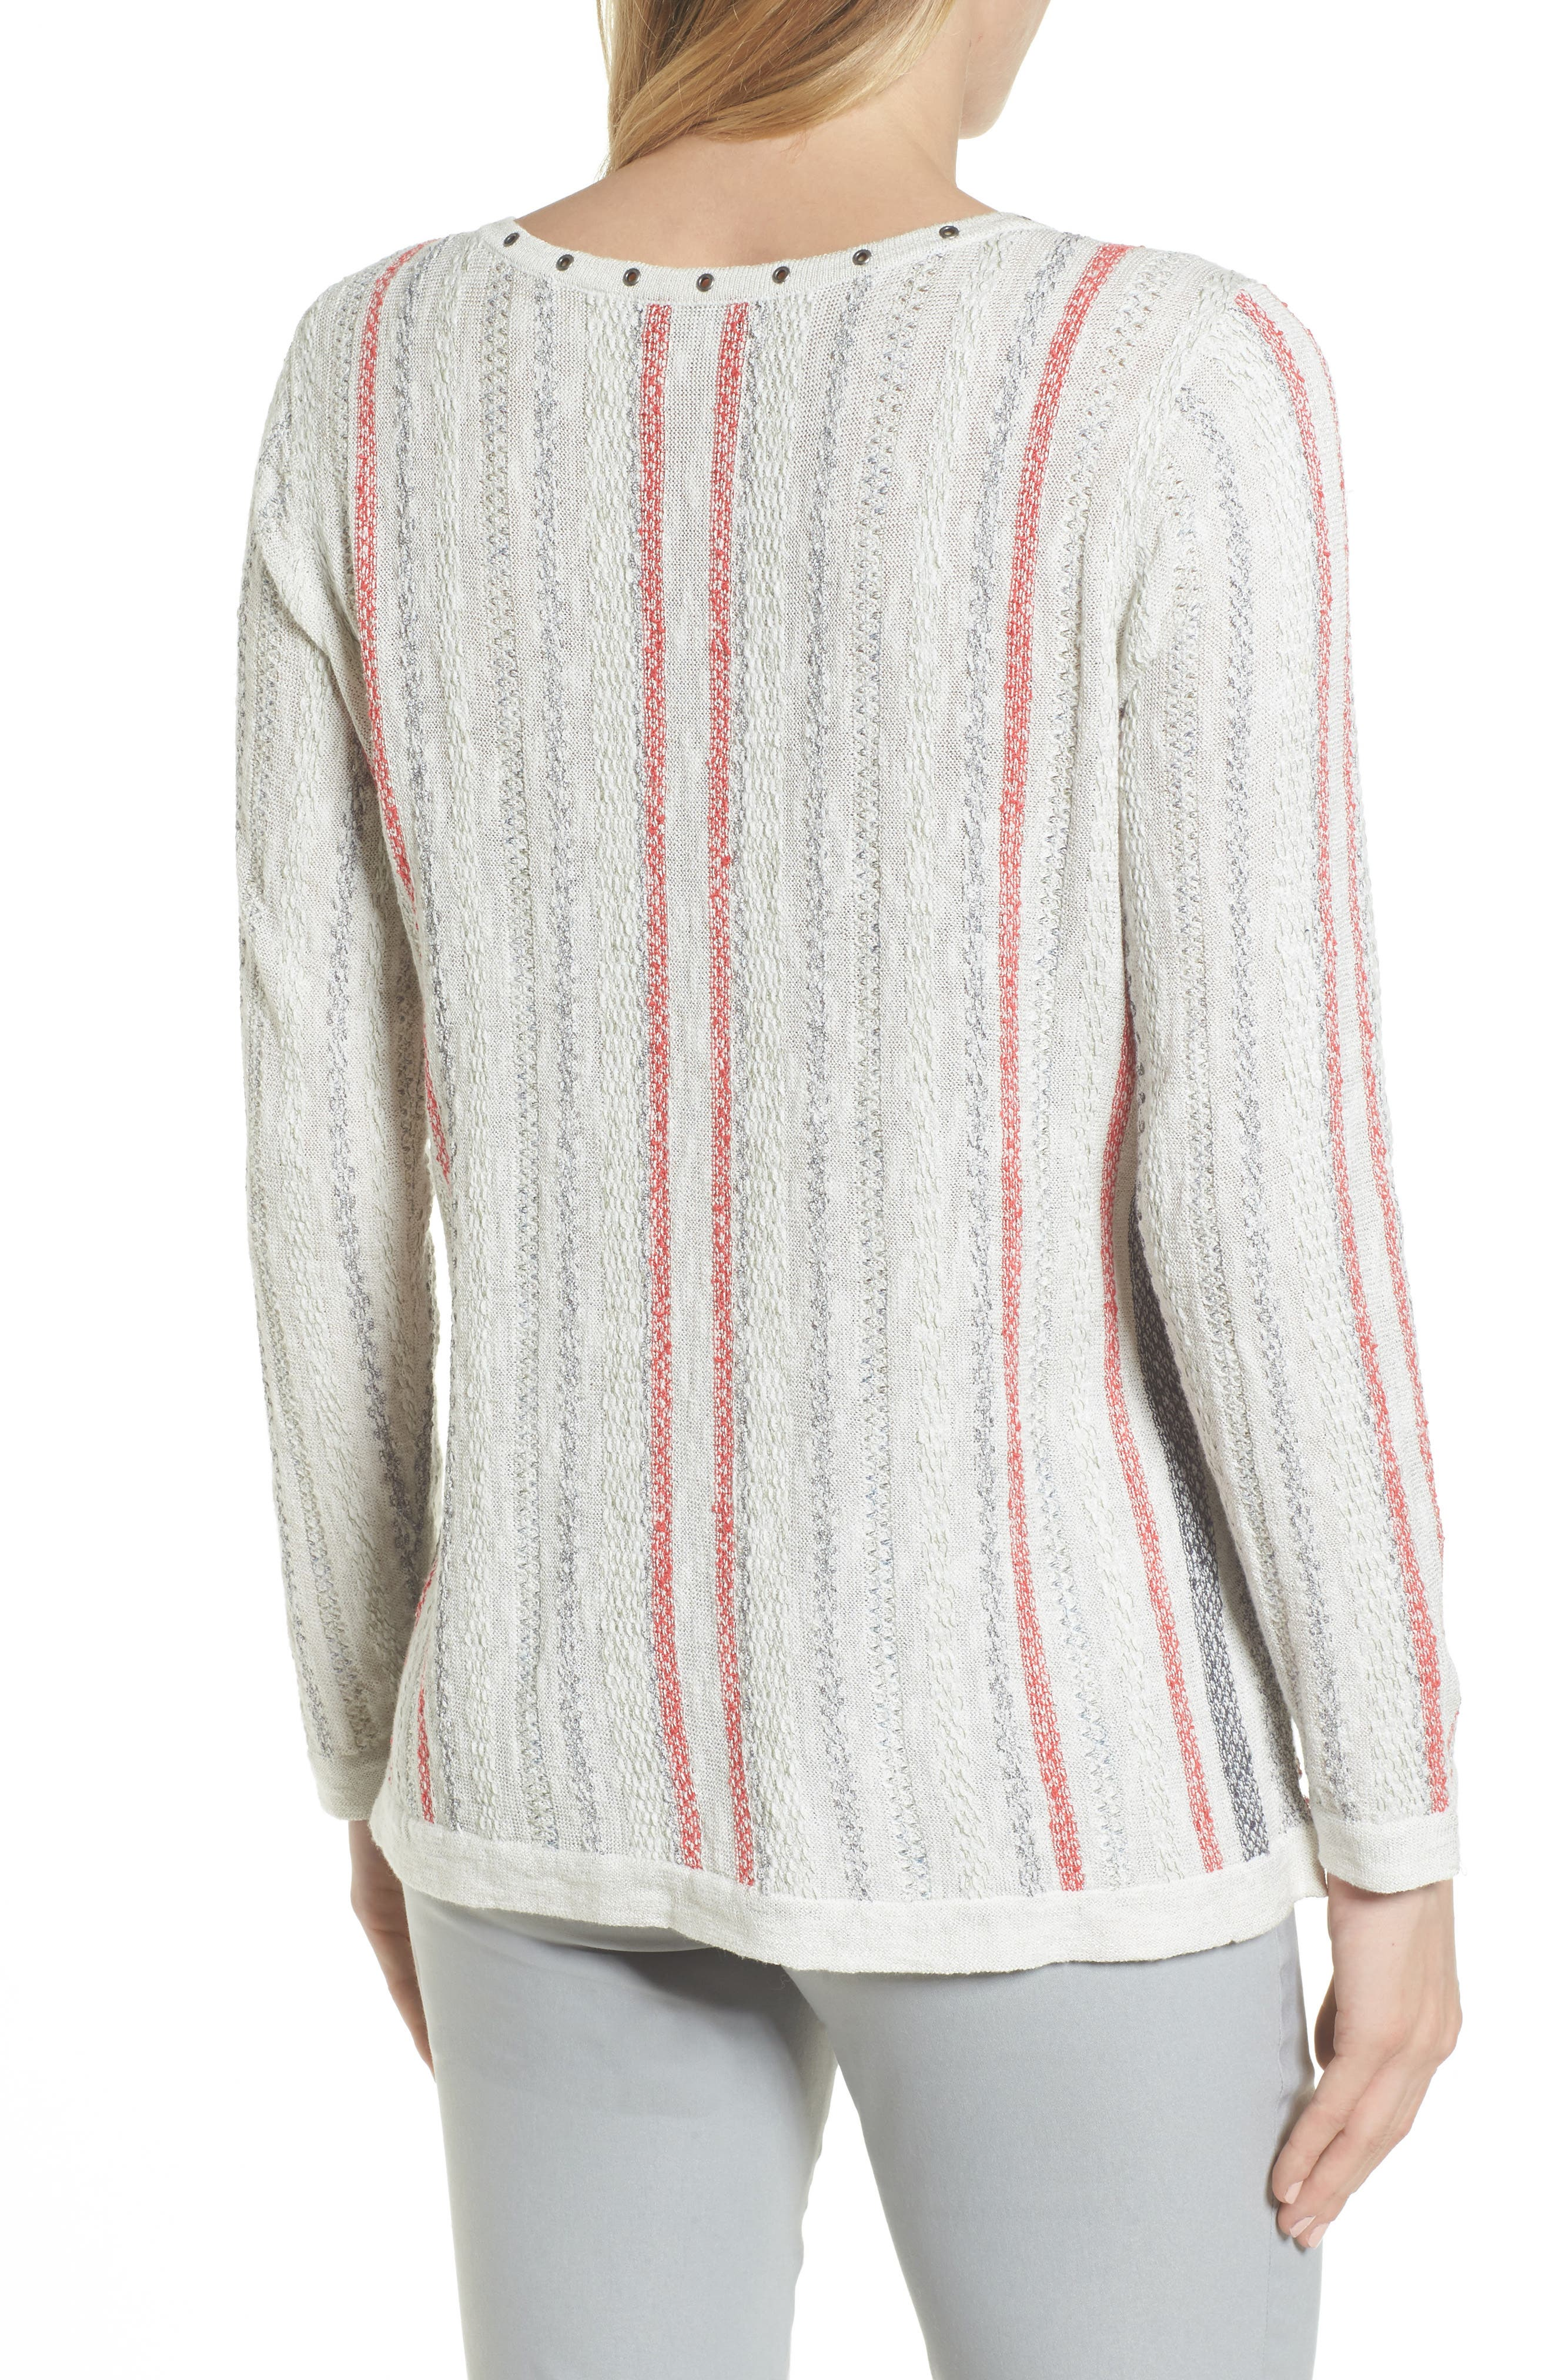 NIC + ZOE Cross Country Lace-Up Top,                             Alternate thumbnail 2, color,                             290